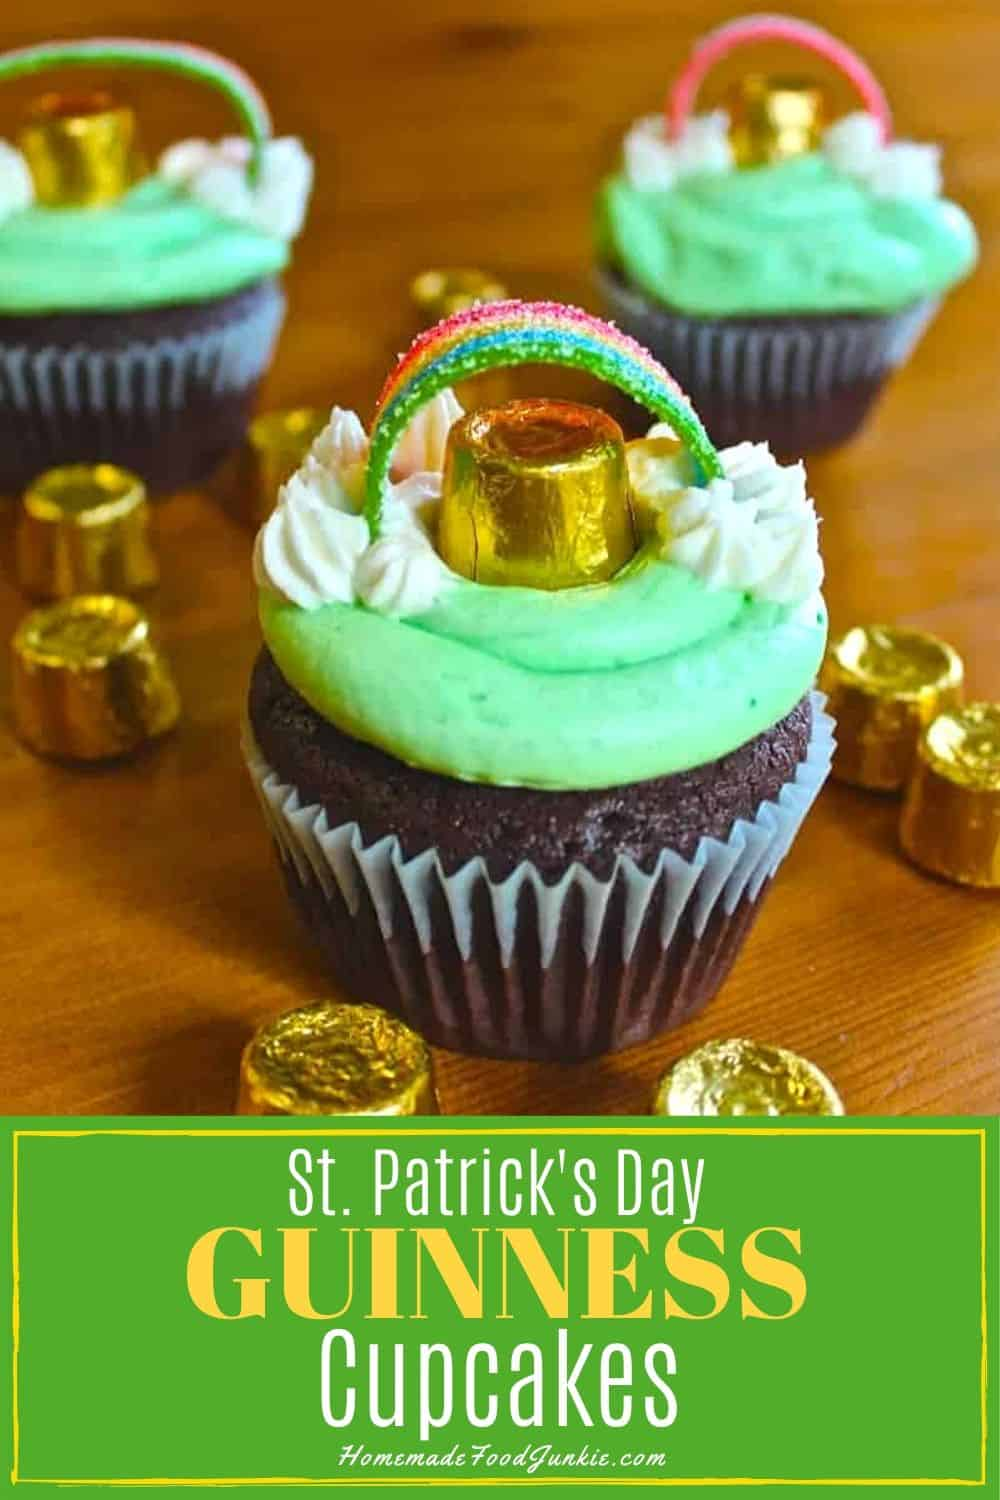 St. Patrick's day Guinness cupcakes-pin image